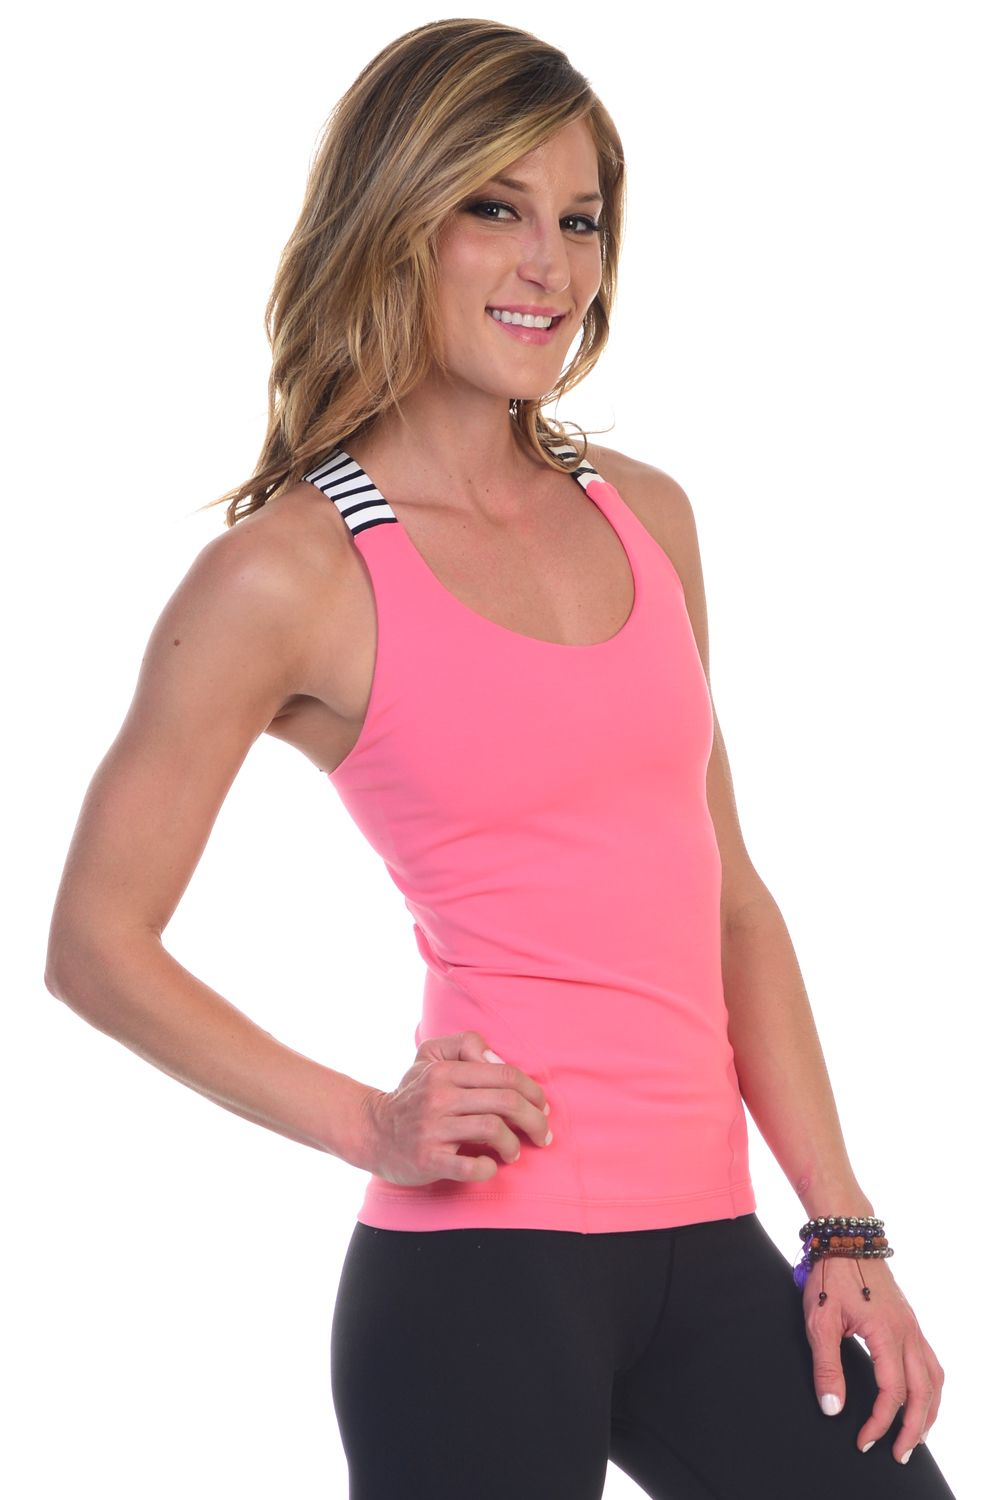 Sweat It Out: Guava with Black and White Stripe Straps